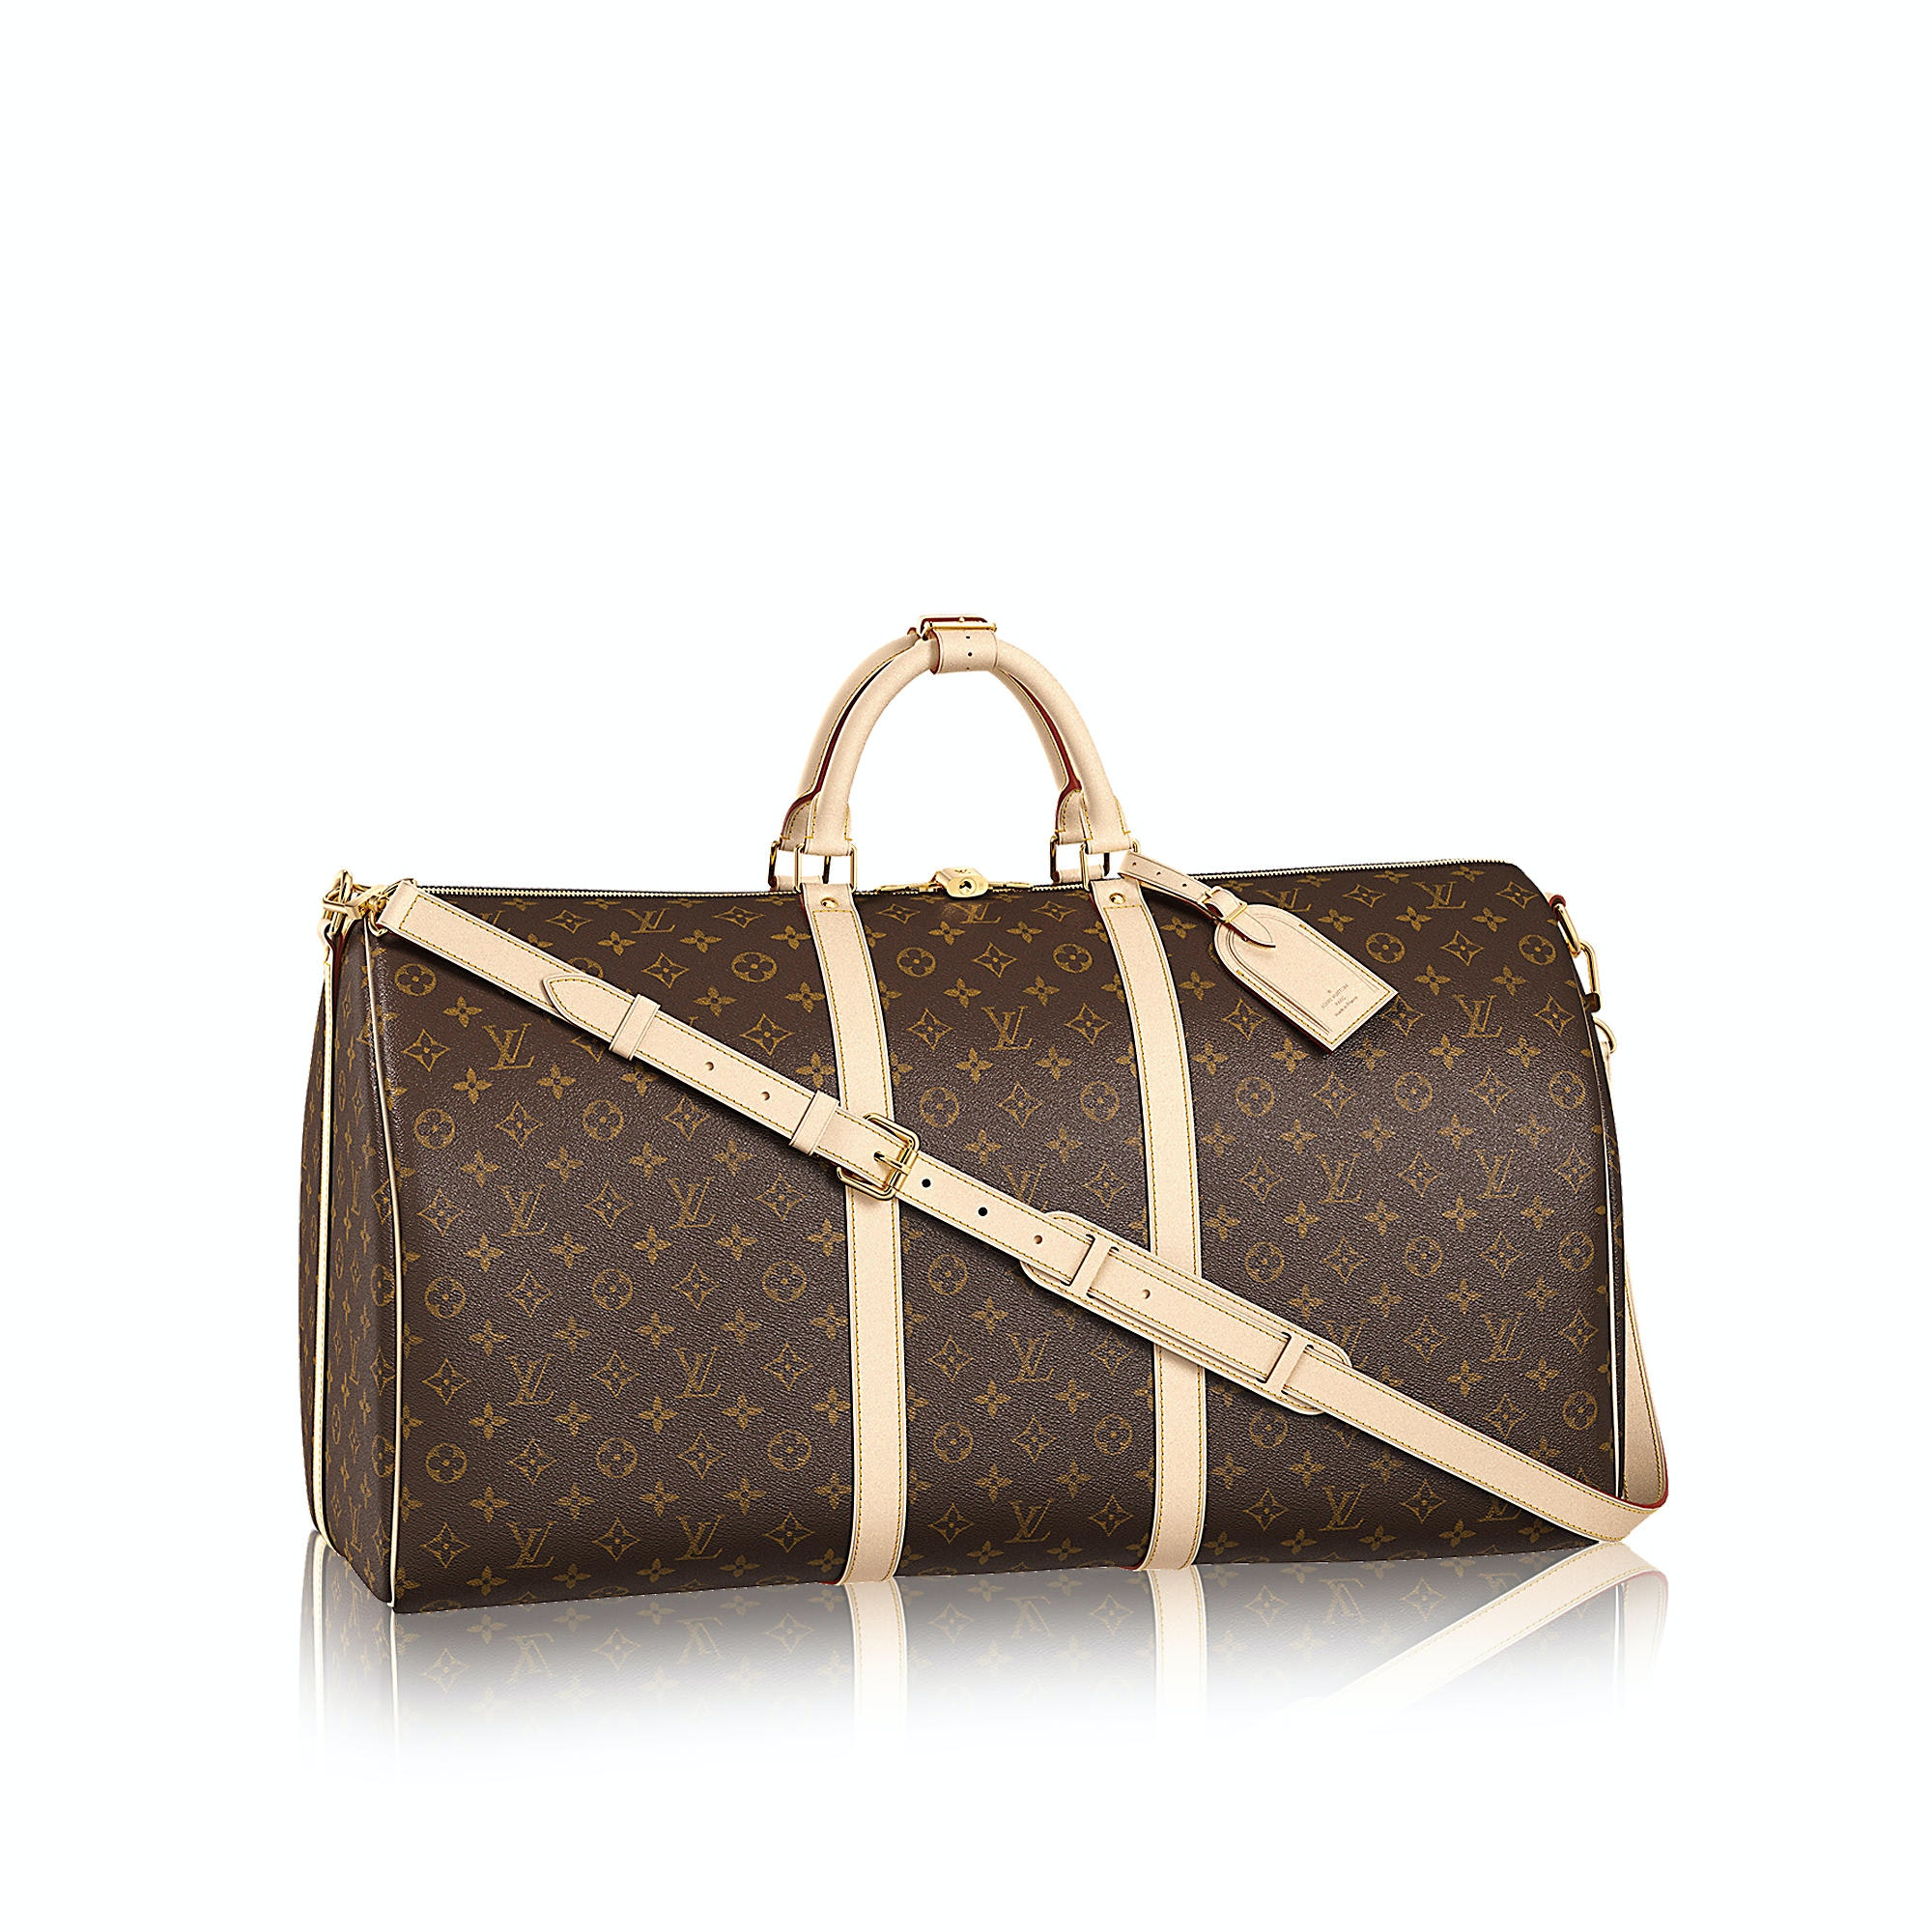 Louis Vuitton Keepall Bandouliere Monogram (With Accessories) 60 Brown